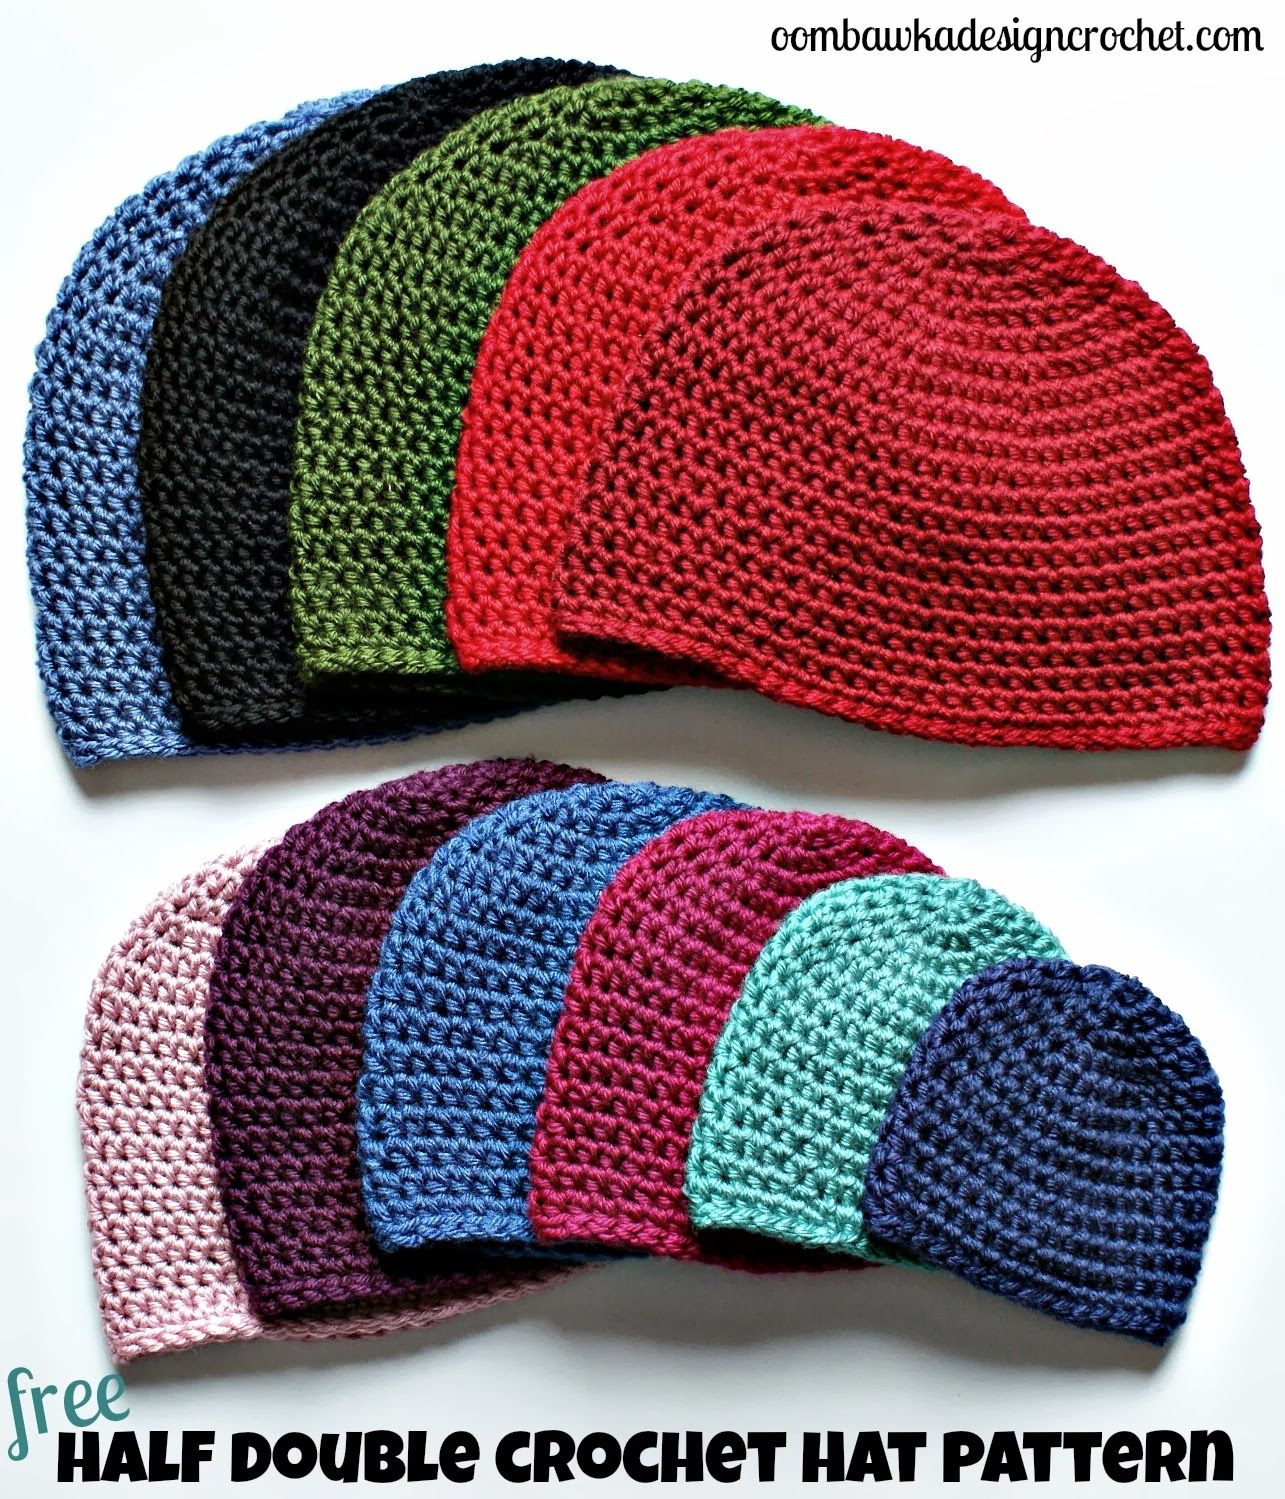 Visit Oombawka Design to get this free crochet hat pattern ...